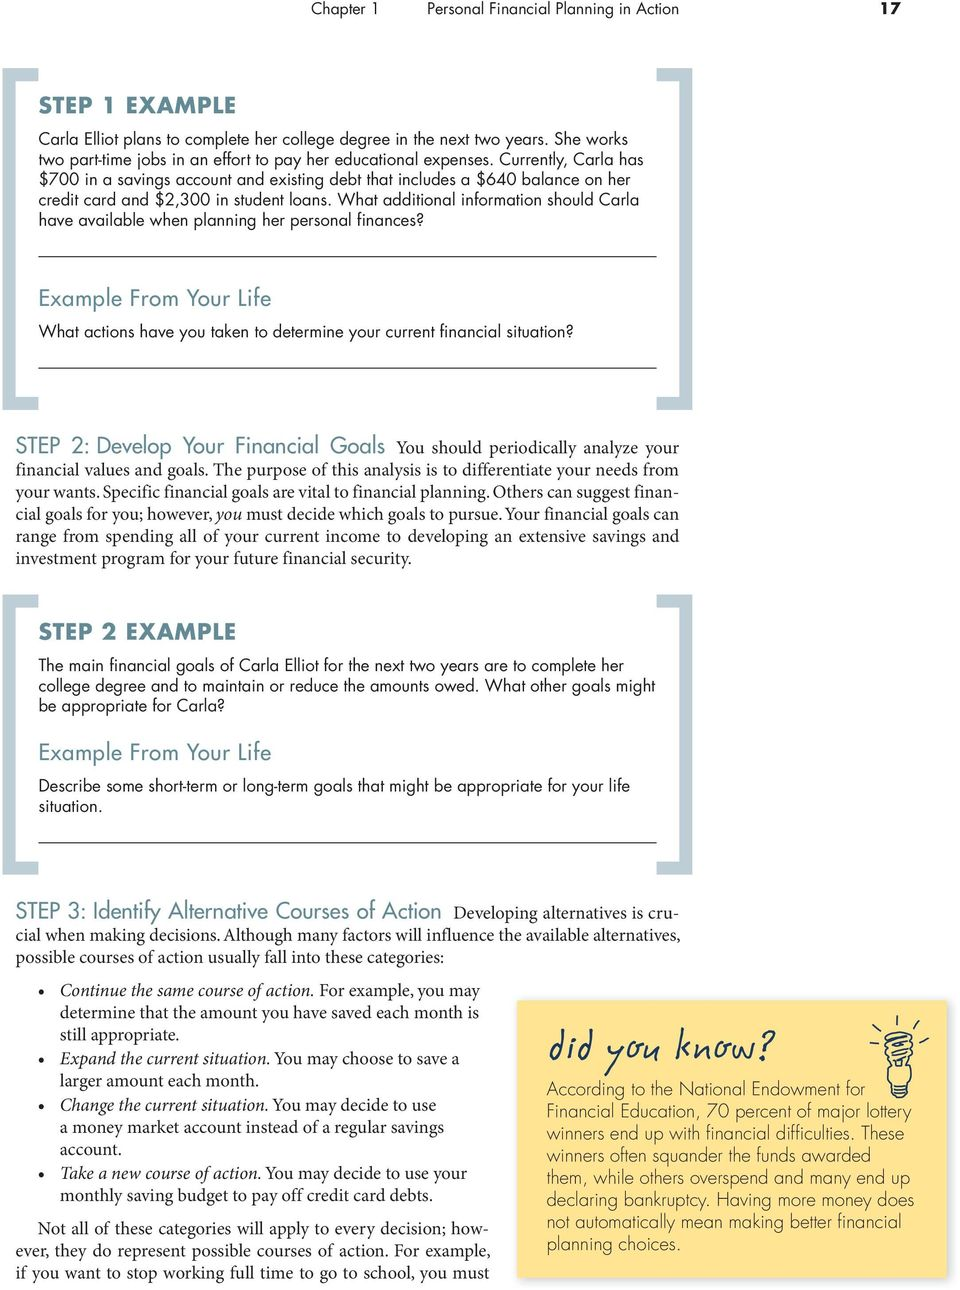 Personal Financial Planning in Action - PDF